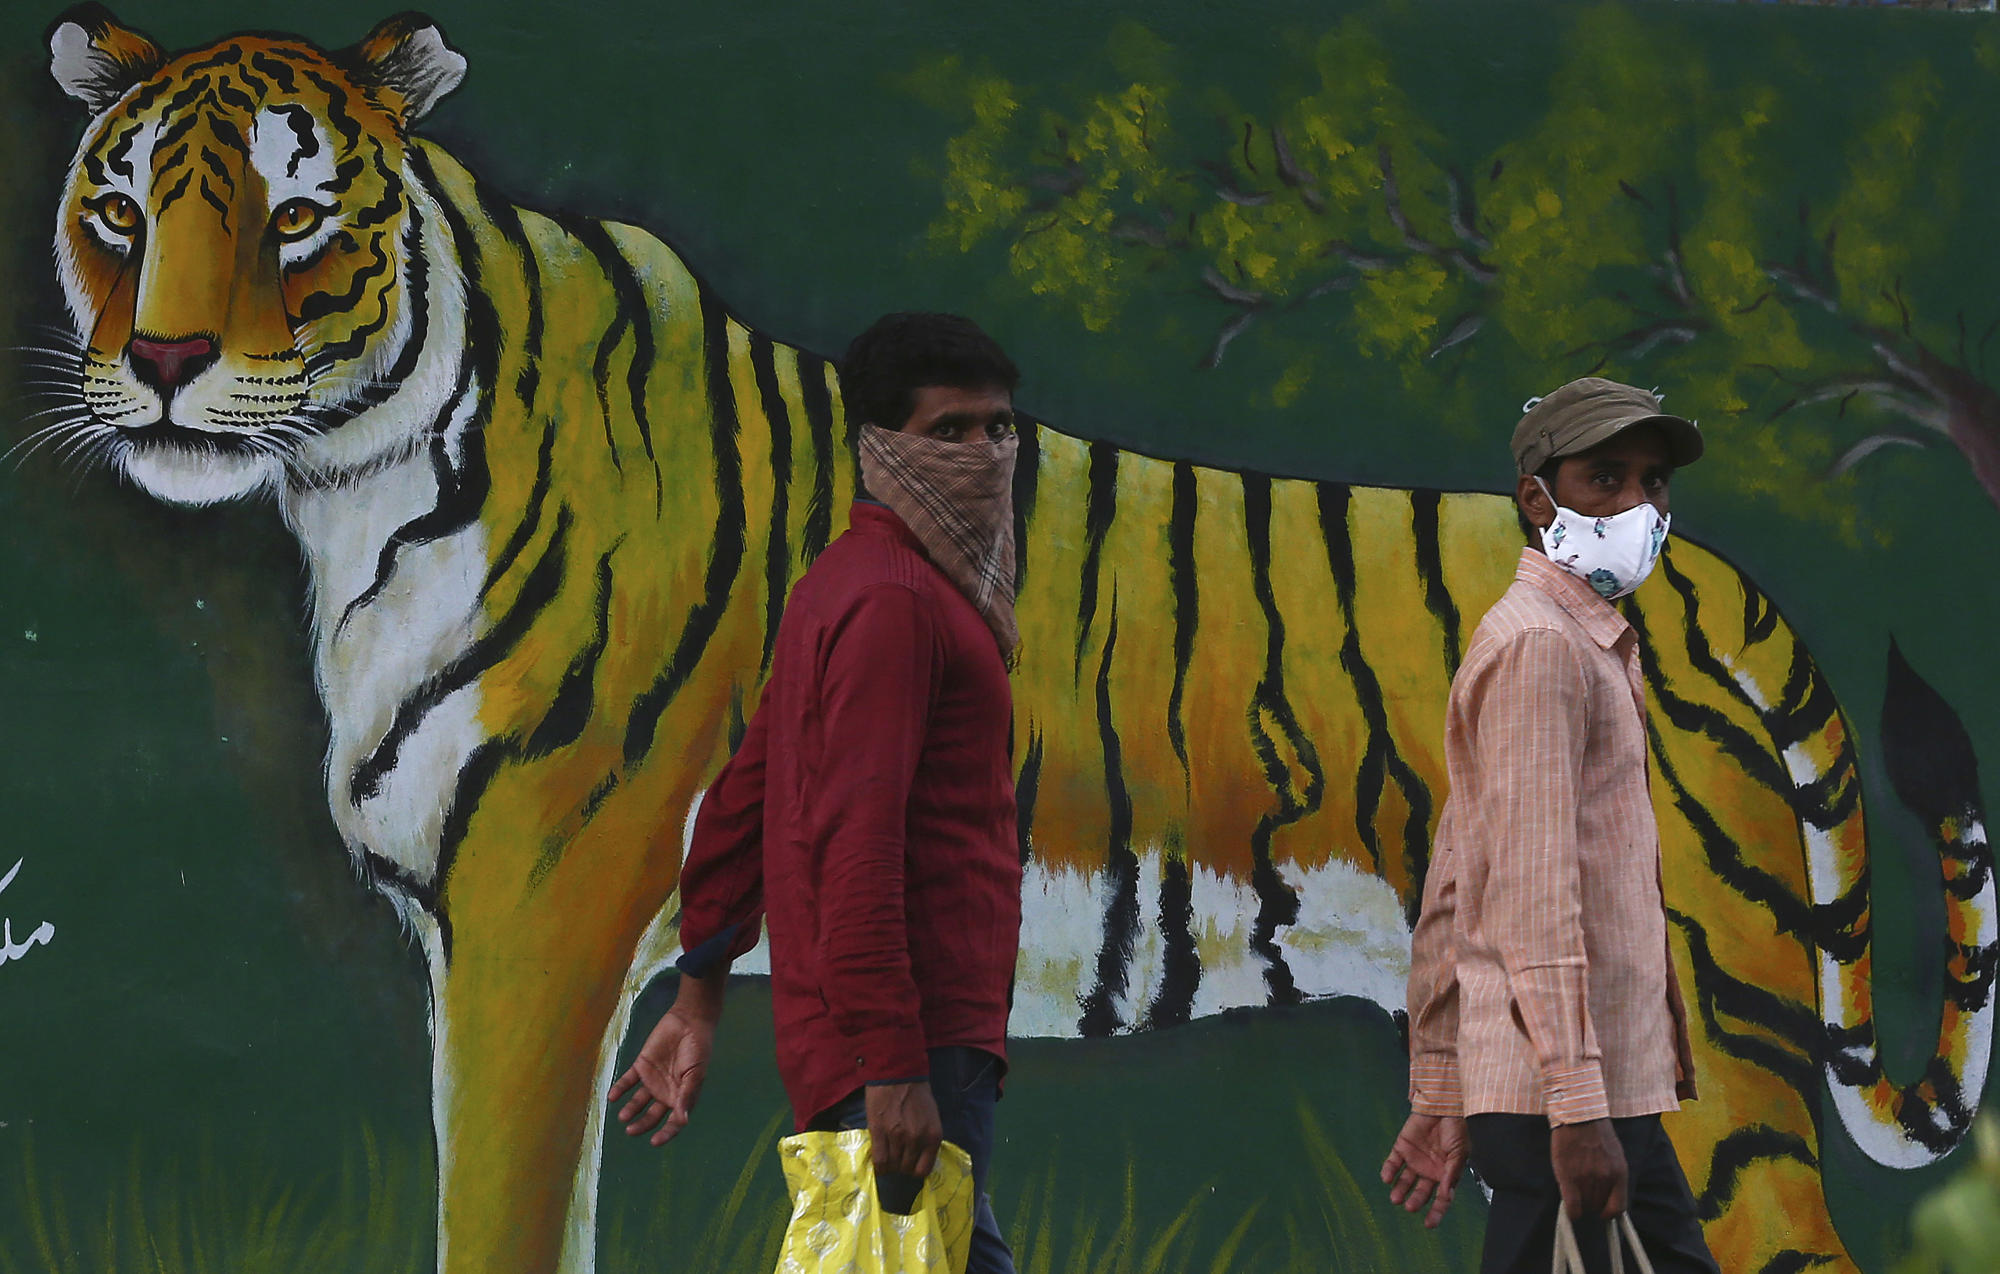 Image The Latest: India sees cases drop, struggles on vaccinating